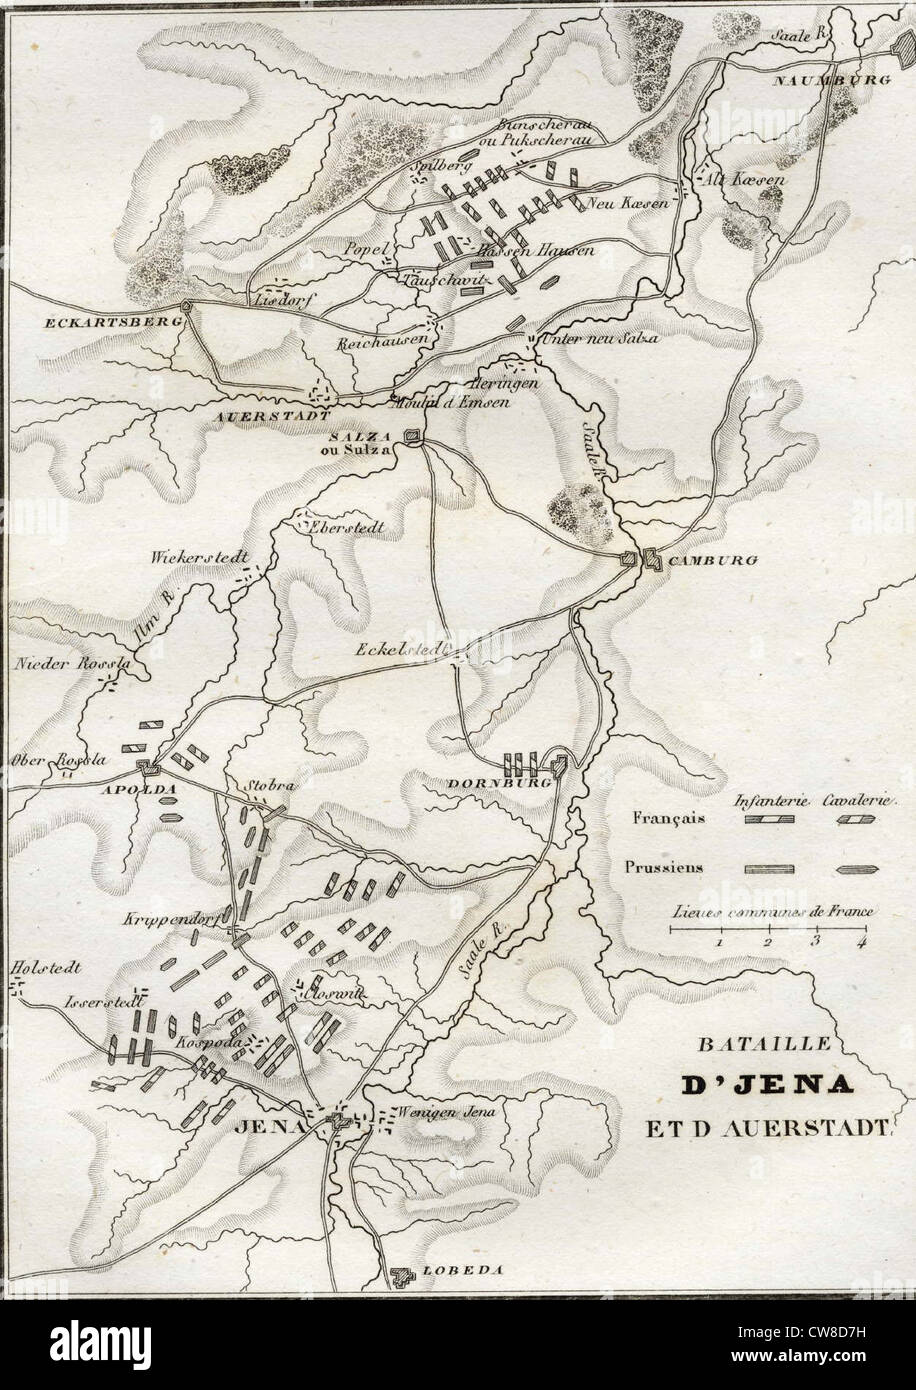 Map of the Battle of Jena - Stock Image